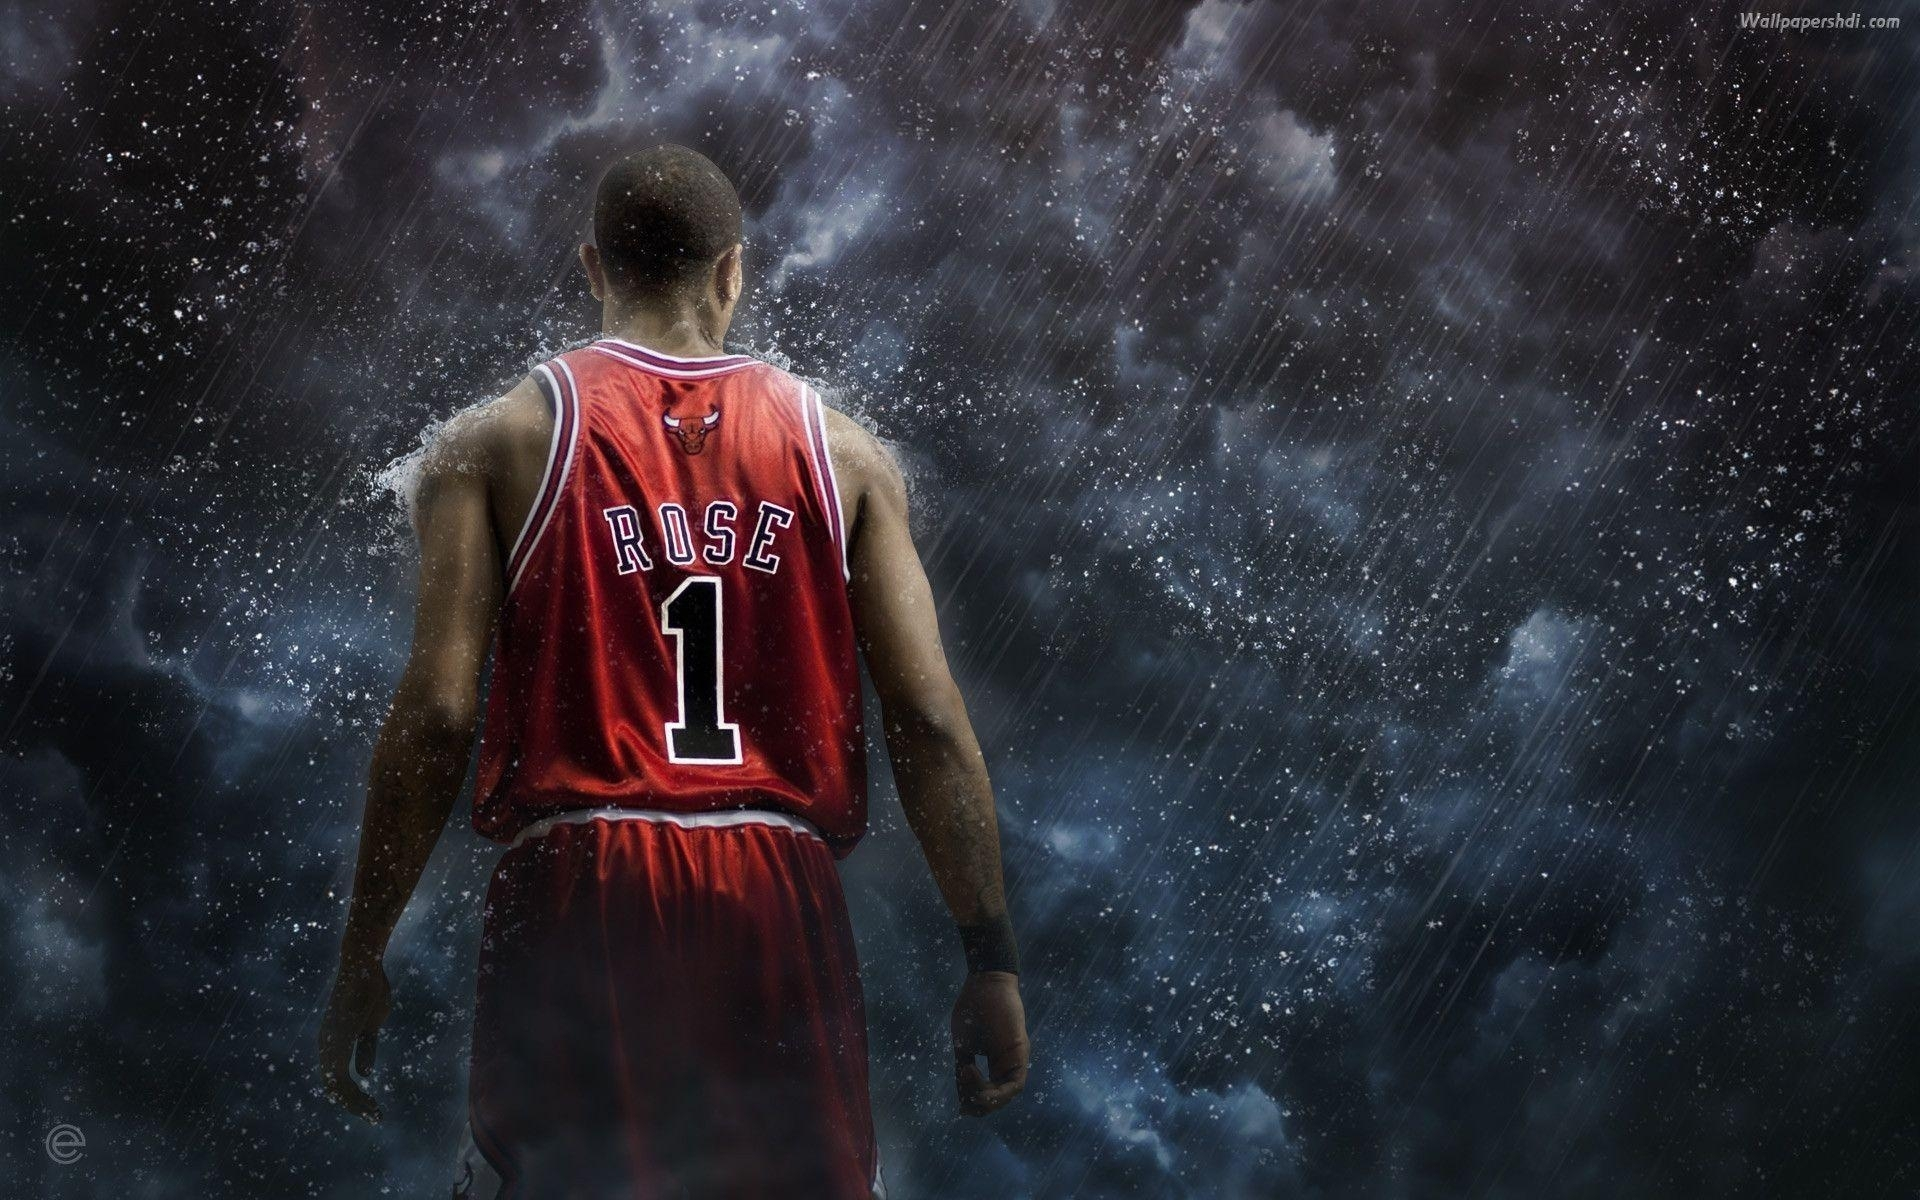 derrick rose wallpapers hd 2017 - wallpaper cave